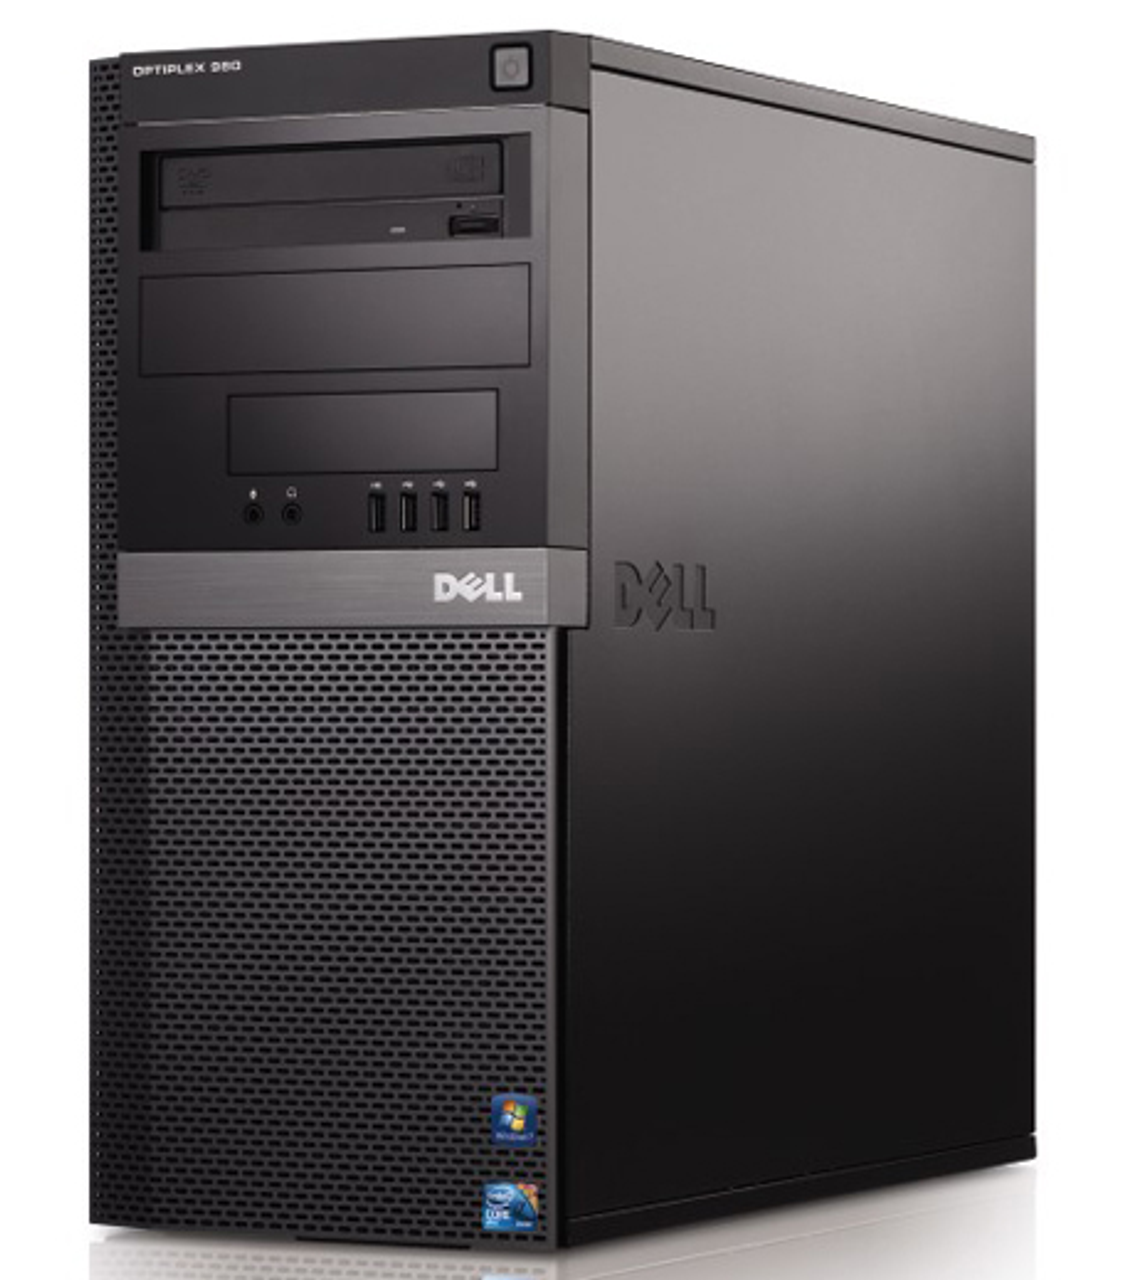 Dell Optiplex 980 Tower Core i5 3.2GHz, 4GB Ram, 250GB HDD, DVD-RW, Windows 10 Pro 64 Desktop Computer